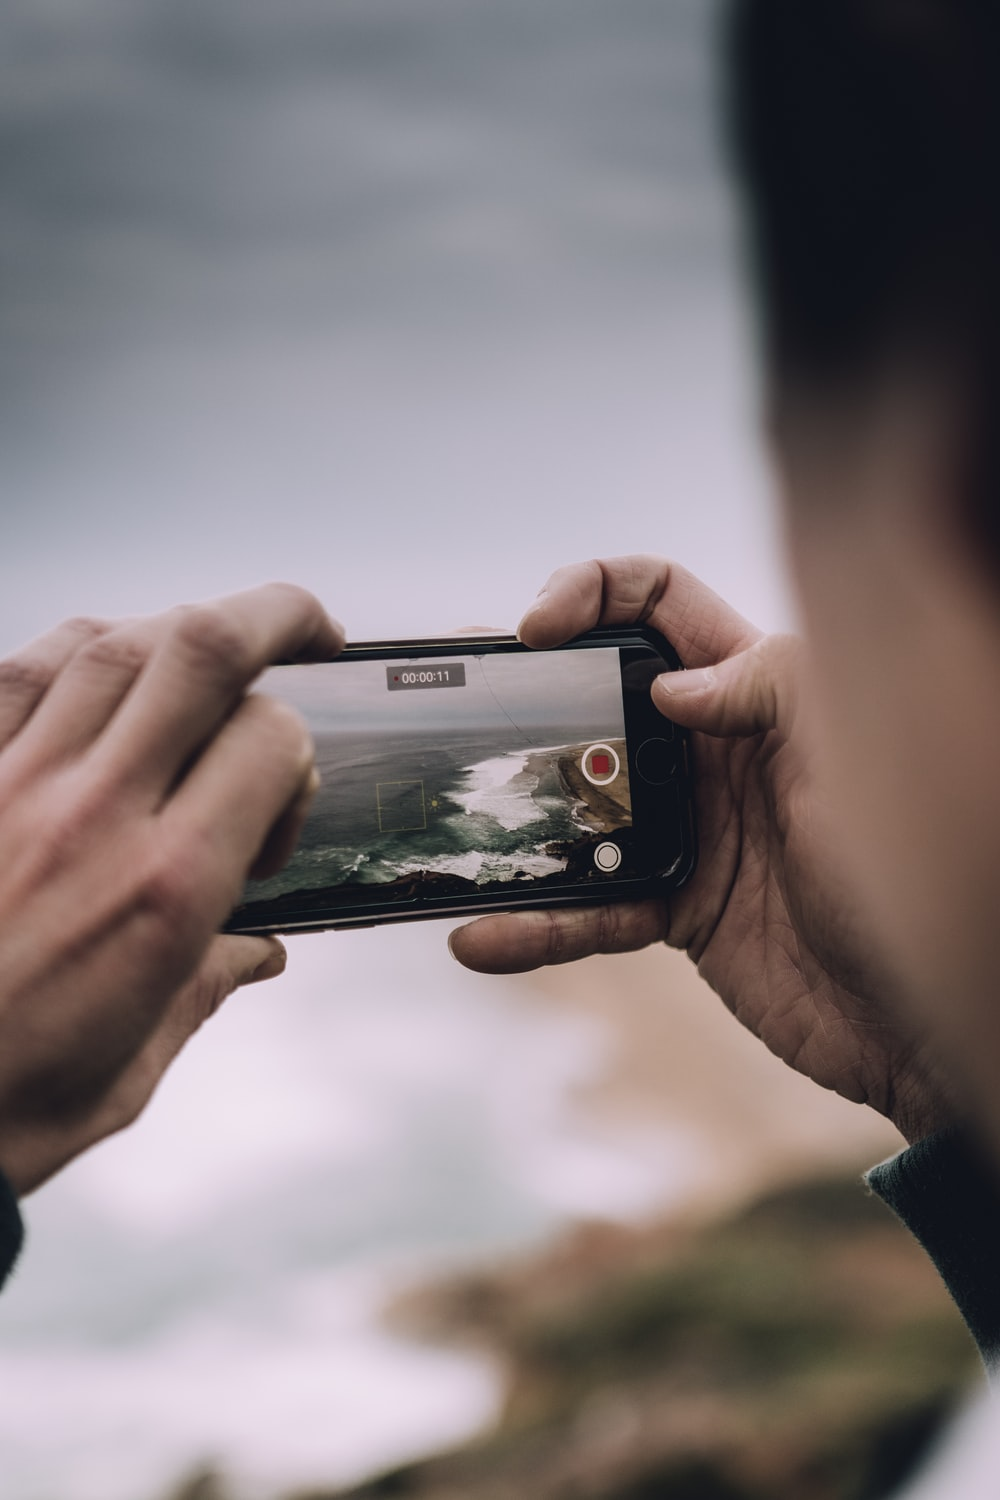 person holding space gray iPhone 6 displaying camera application